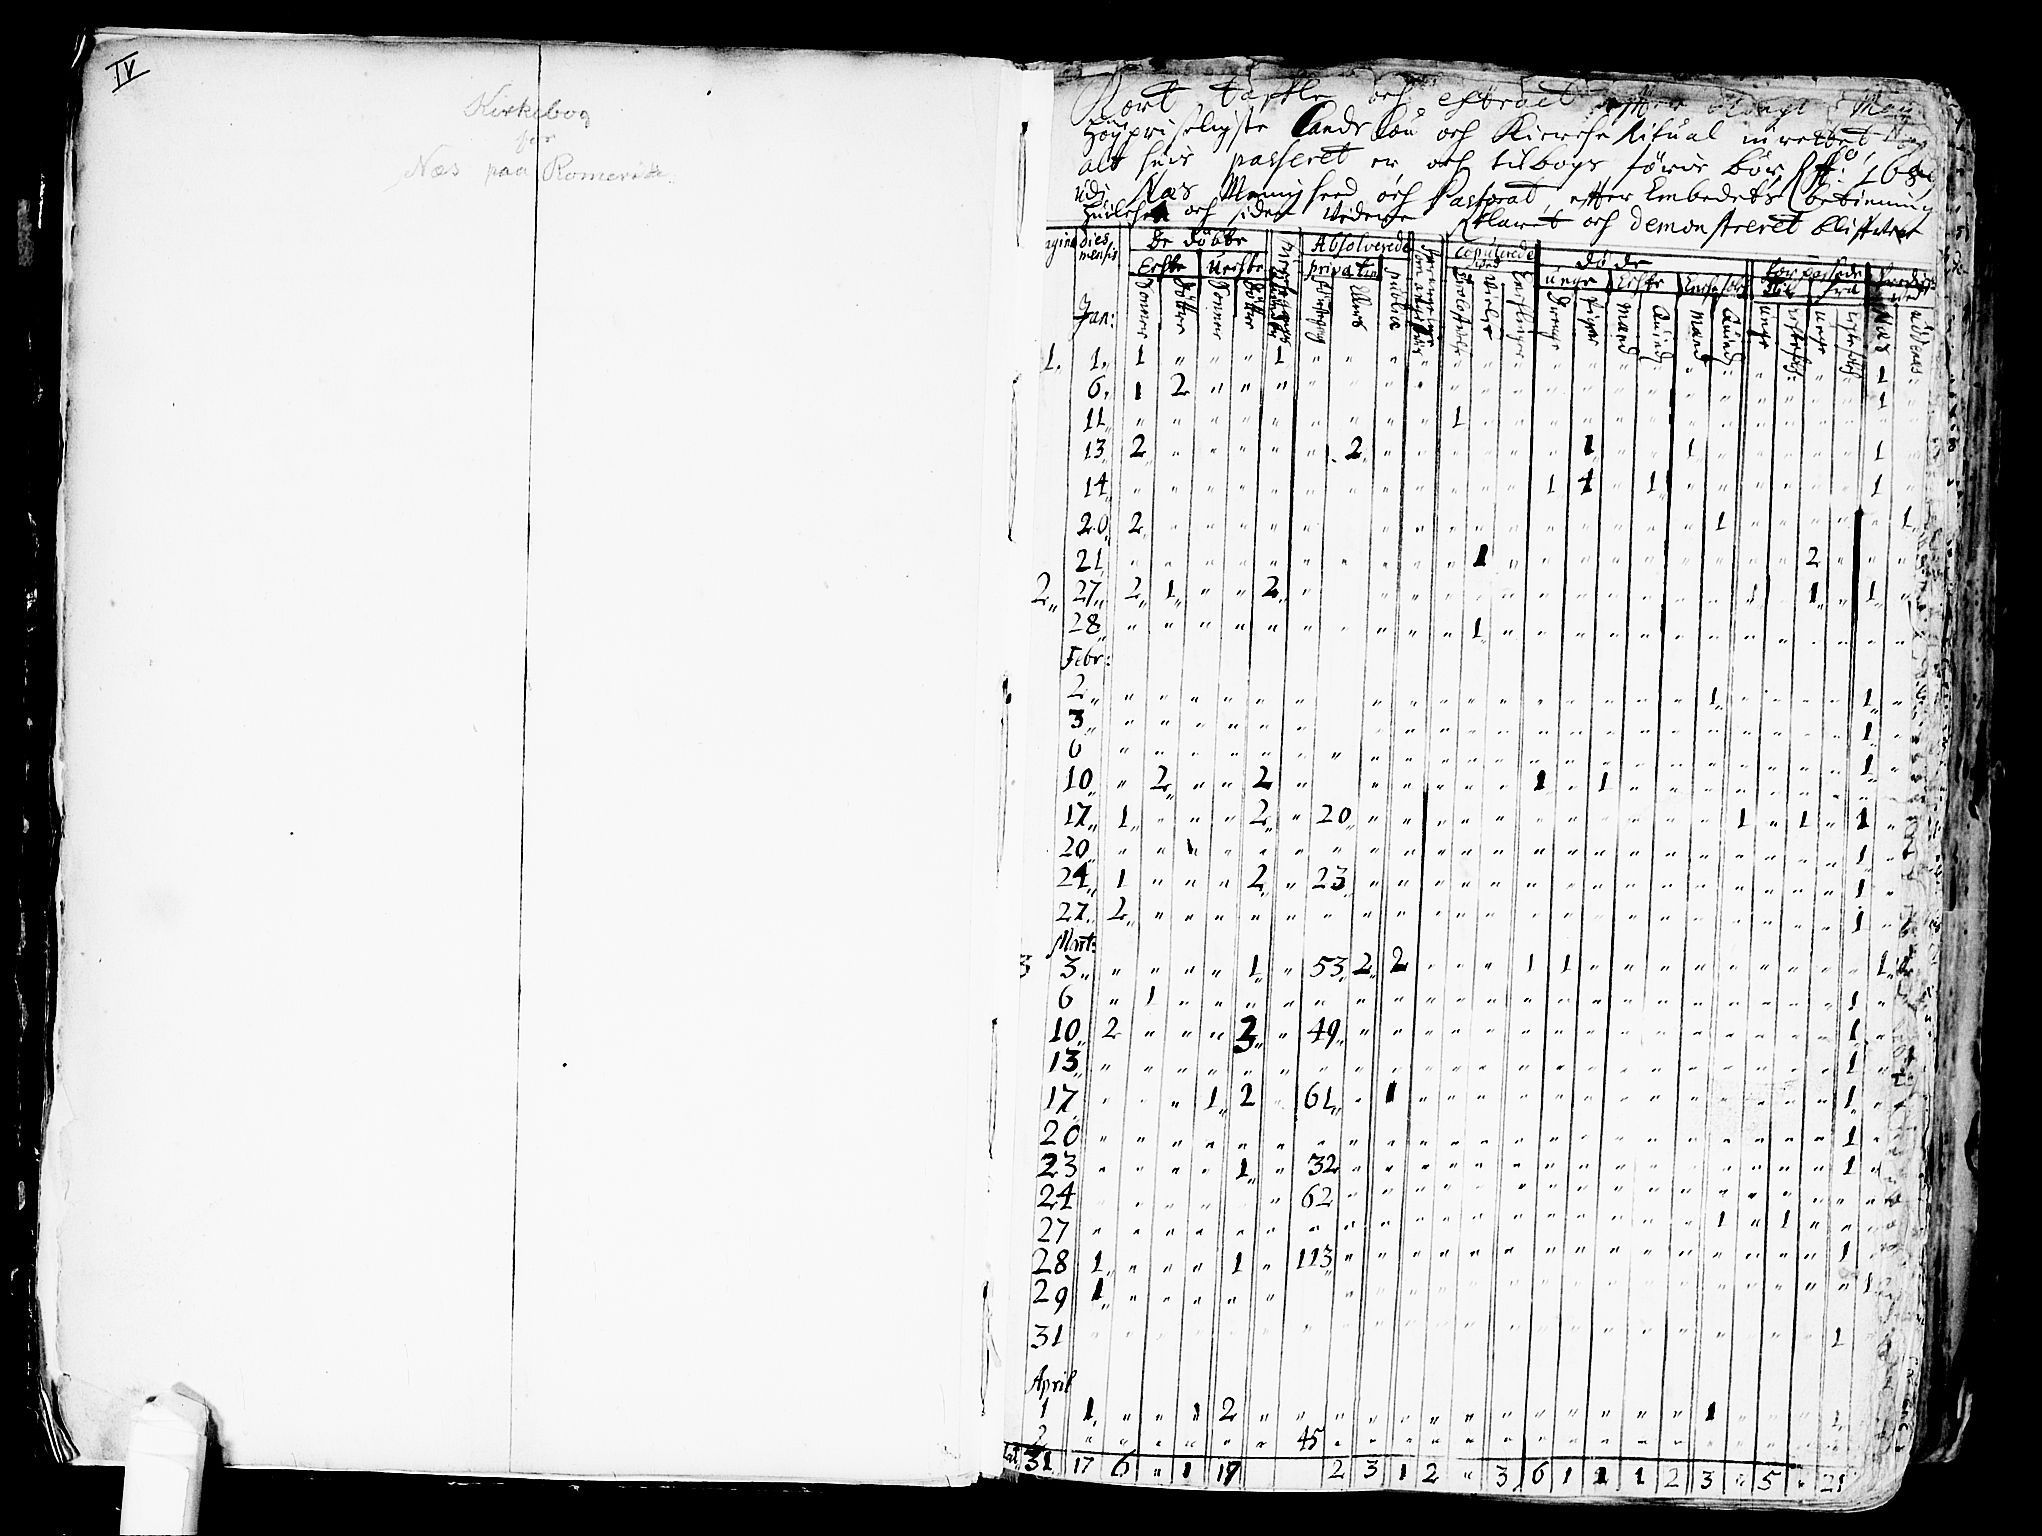 SAO, Nes prestekontor Kirkebøker, F/Fa/L0001: Parish register (official) no. I 1, 1689-1716, p. V